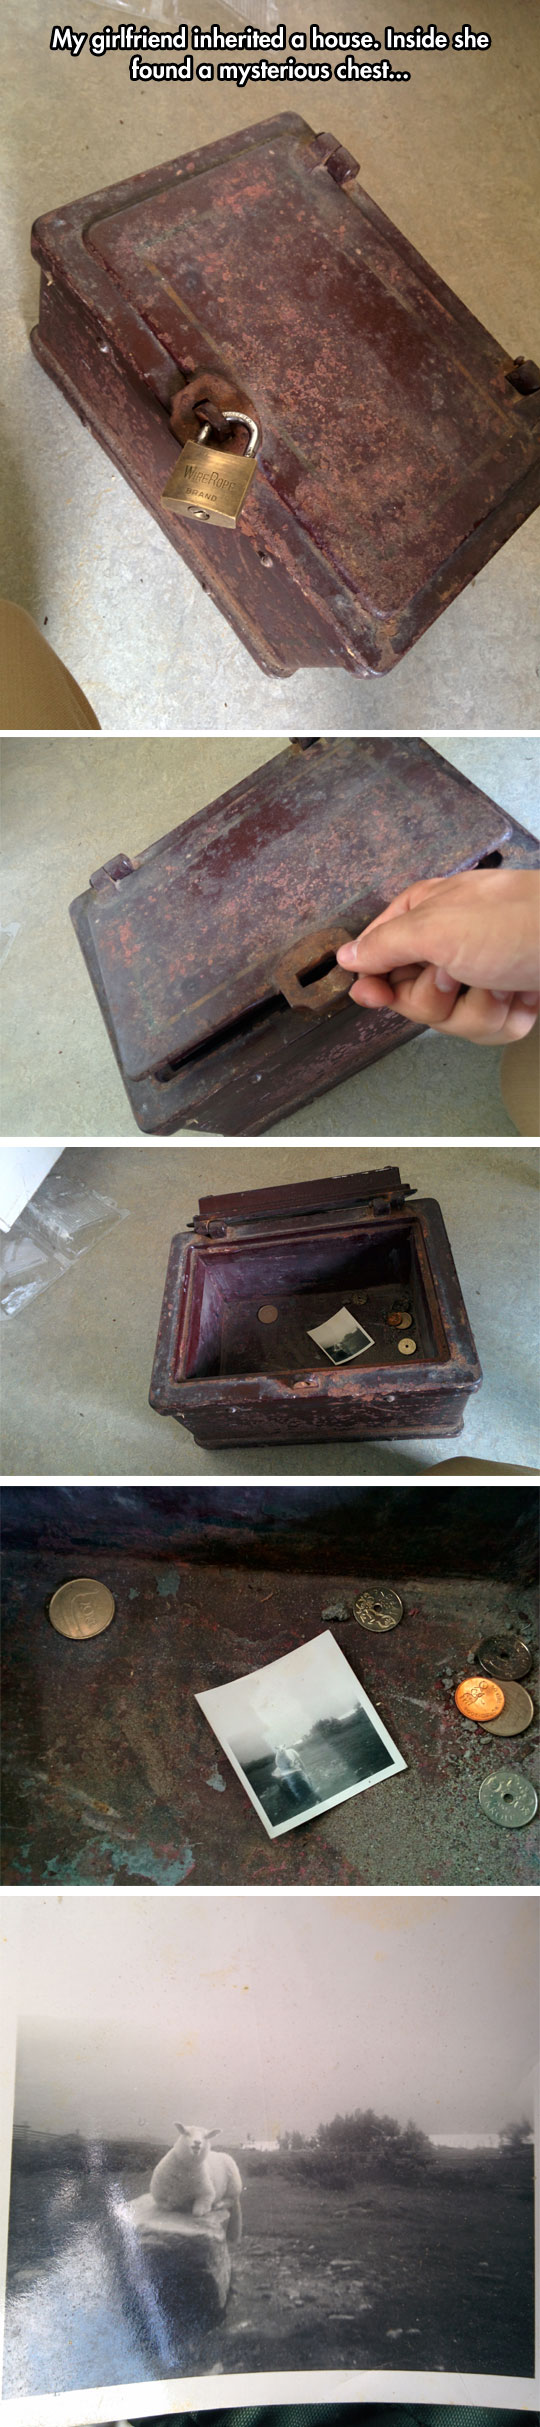 cool-treasure-chest-coins-old